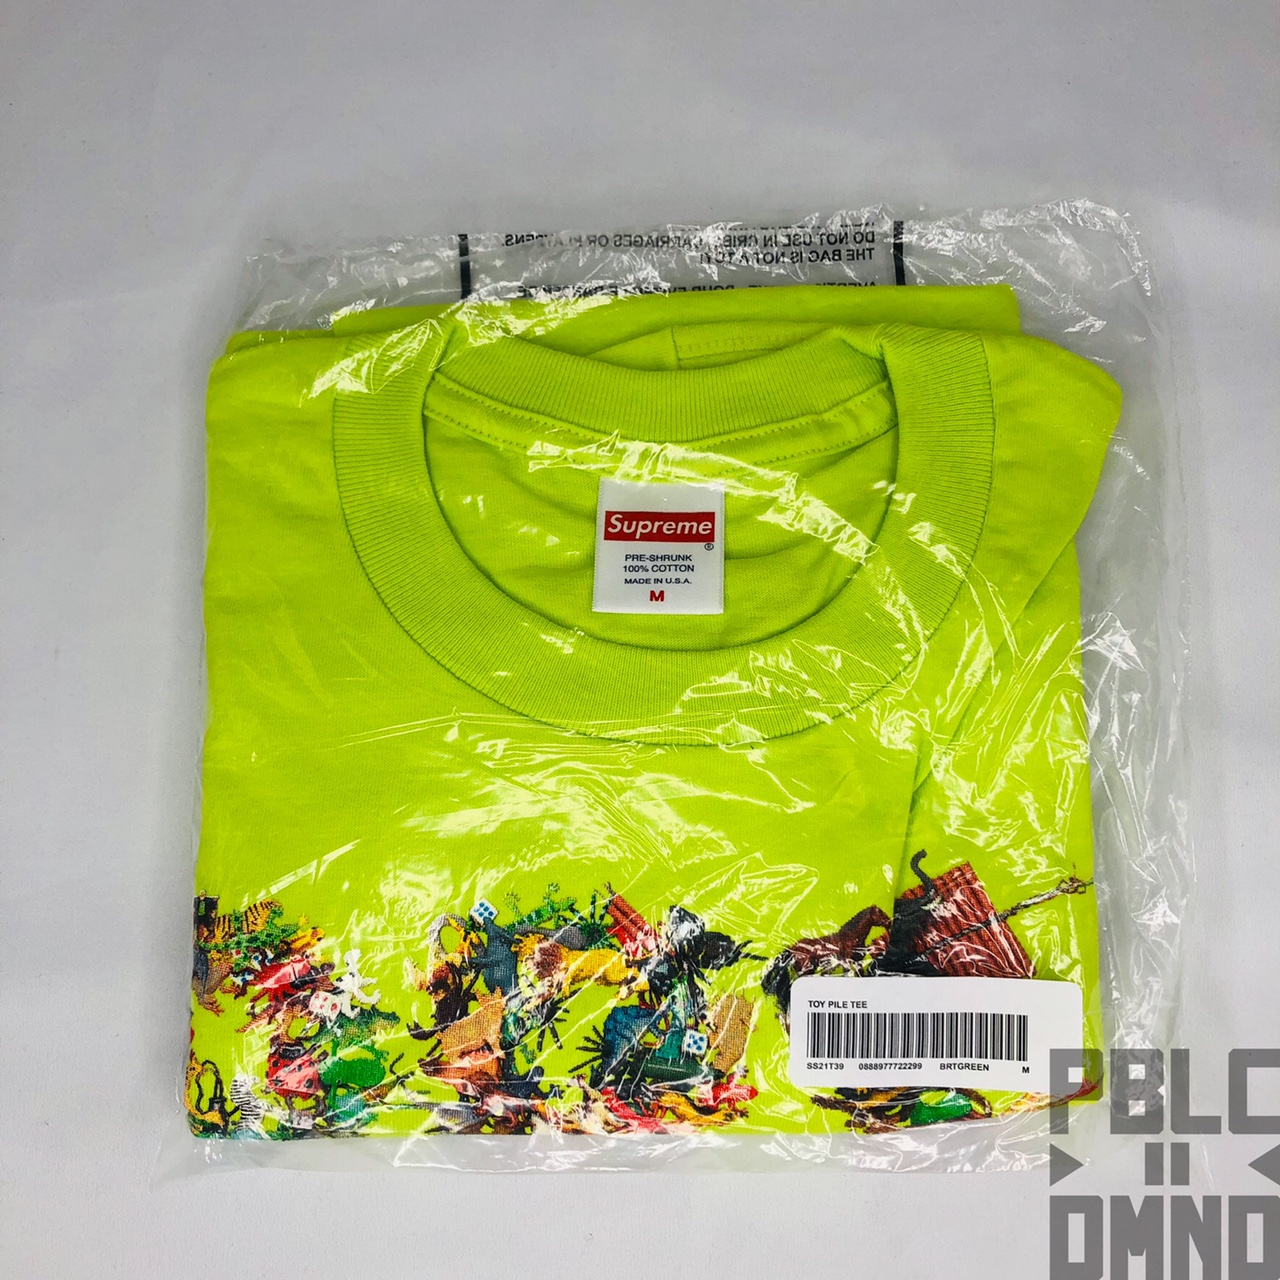 Product Image 1 - Item: Supreme Toy Pile Tee Size: